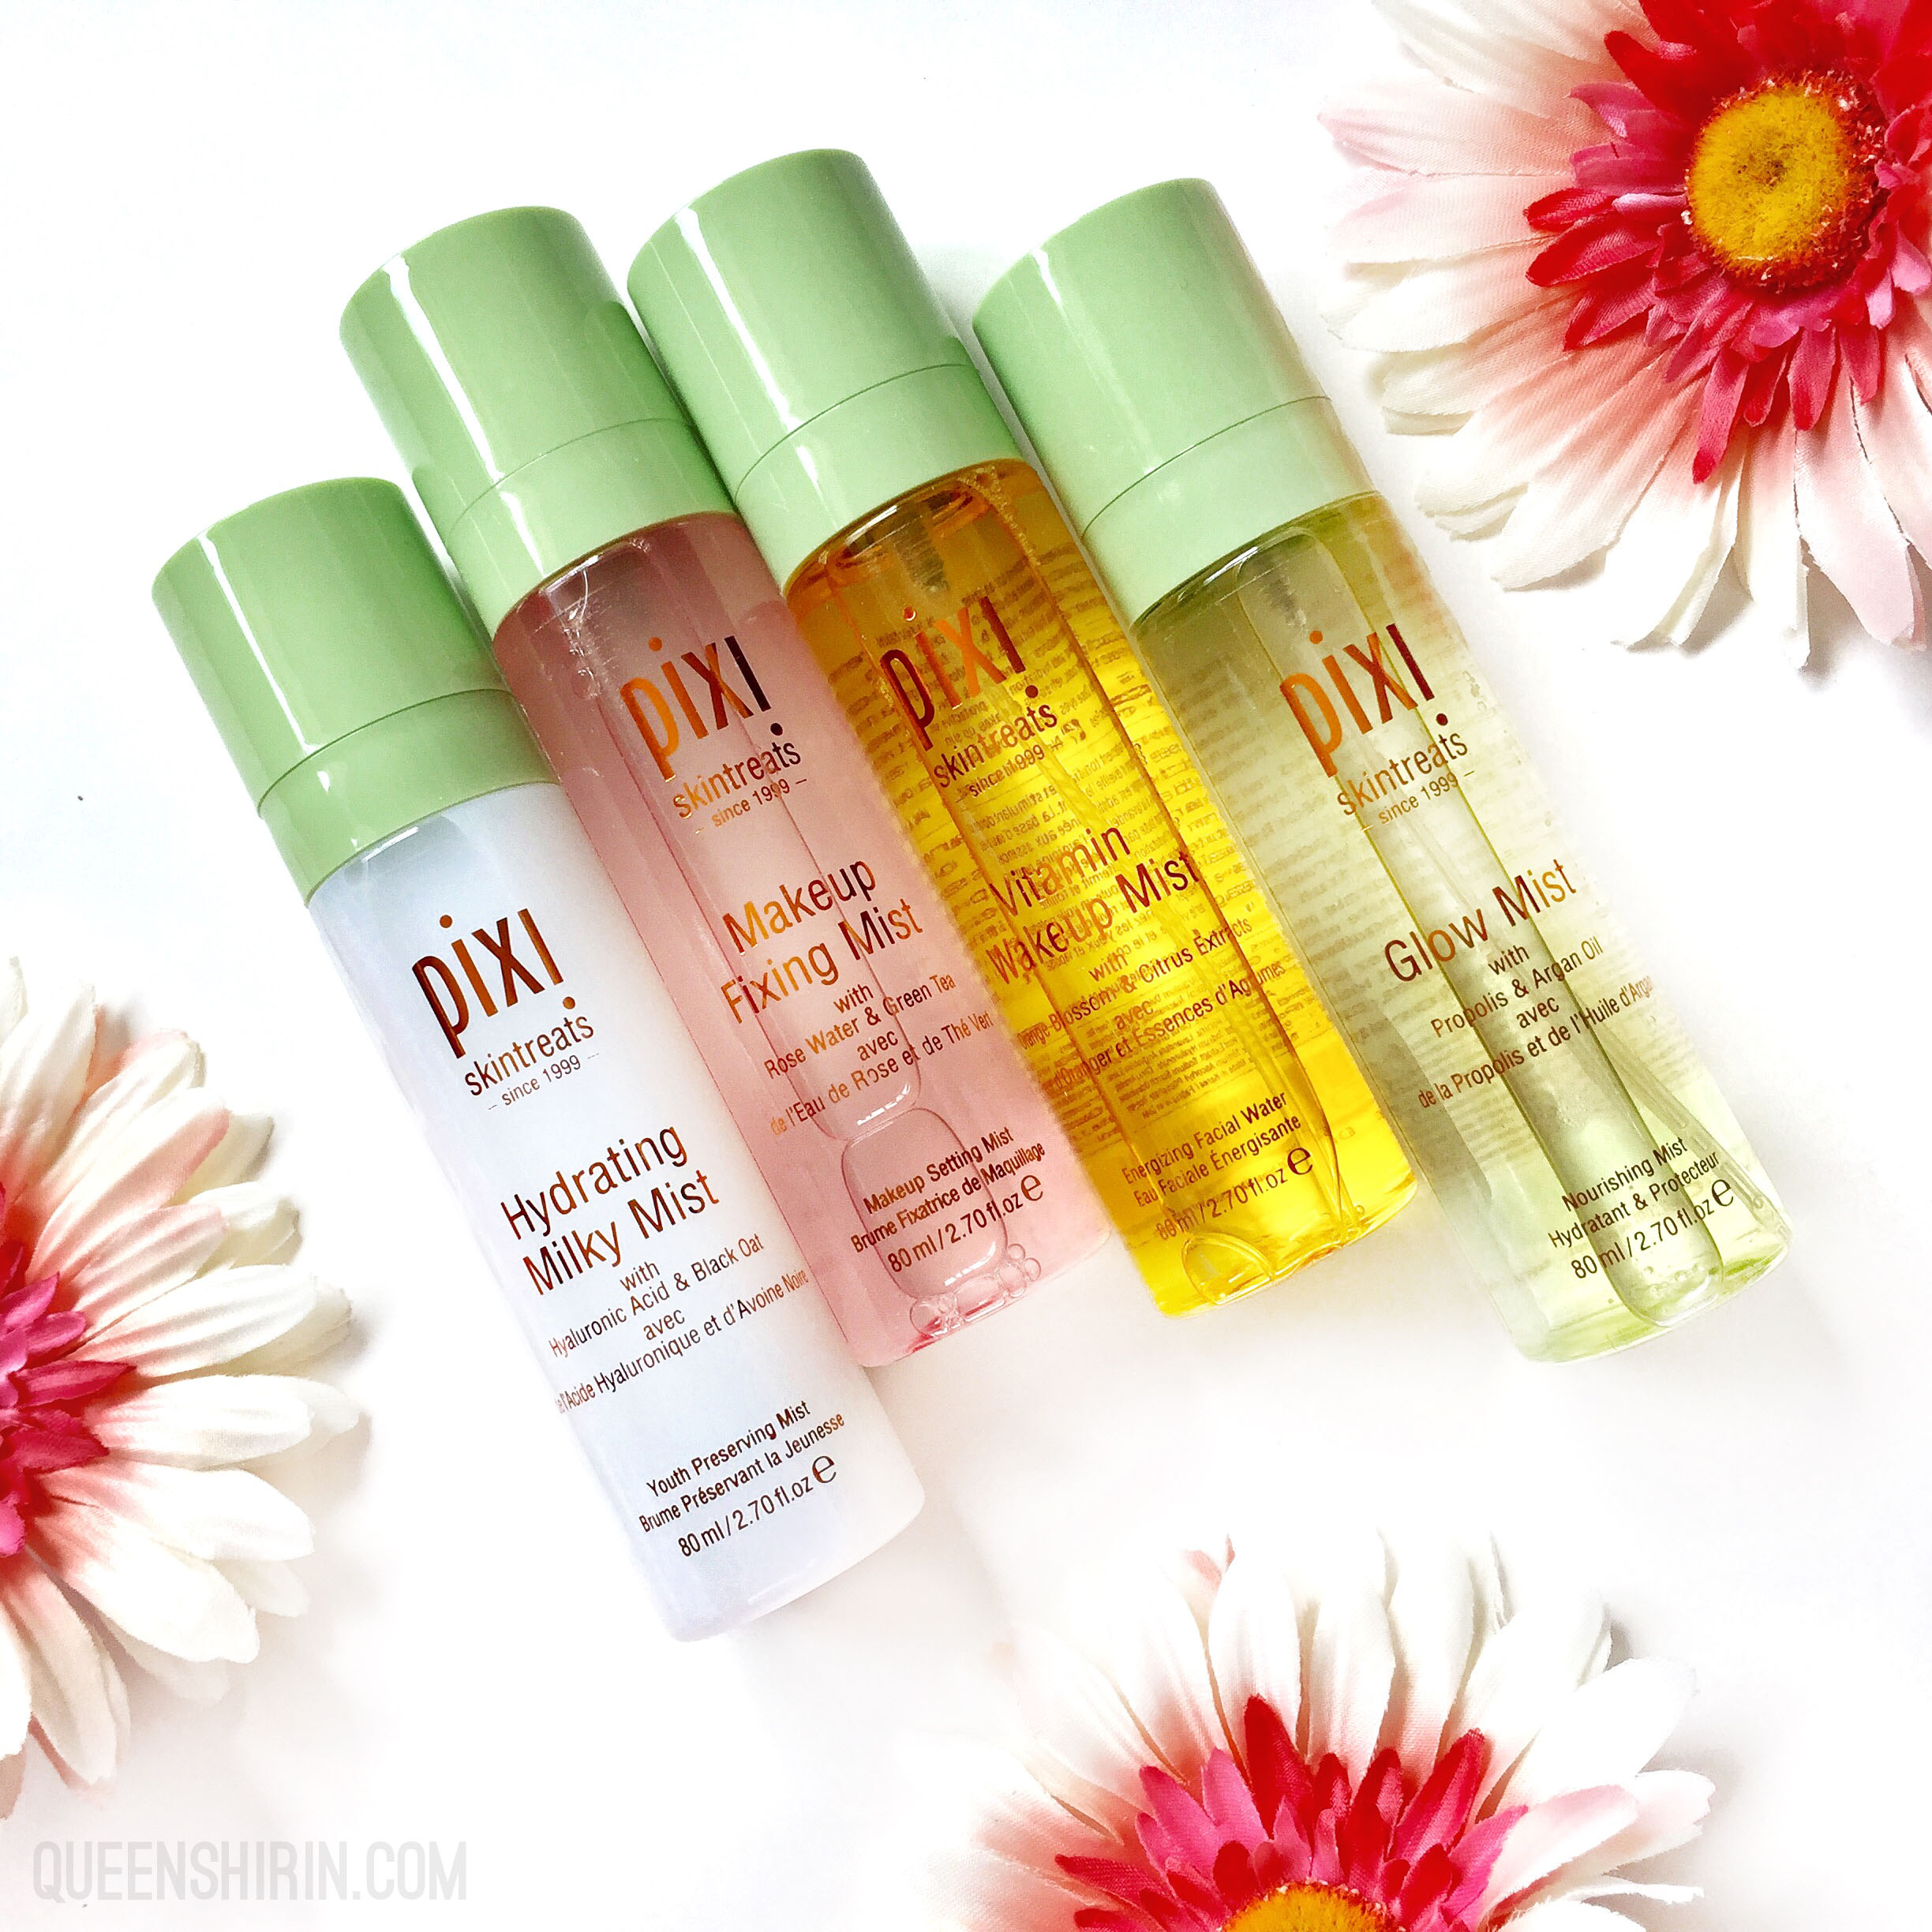 Pixi Beauty Multi-Misting Face Mists. From left to right: Pixi's Hydrating Milky Mist, Pixi's Makeup Fixing Mist, Pixi's Vitamin Wakeup Mist, Pixi's Glow Mist